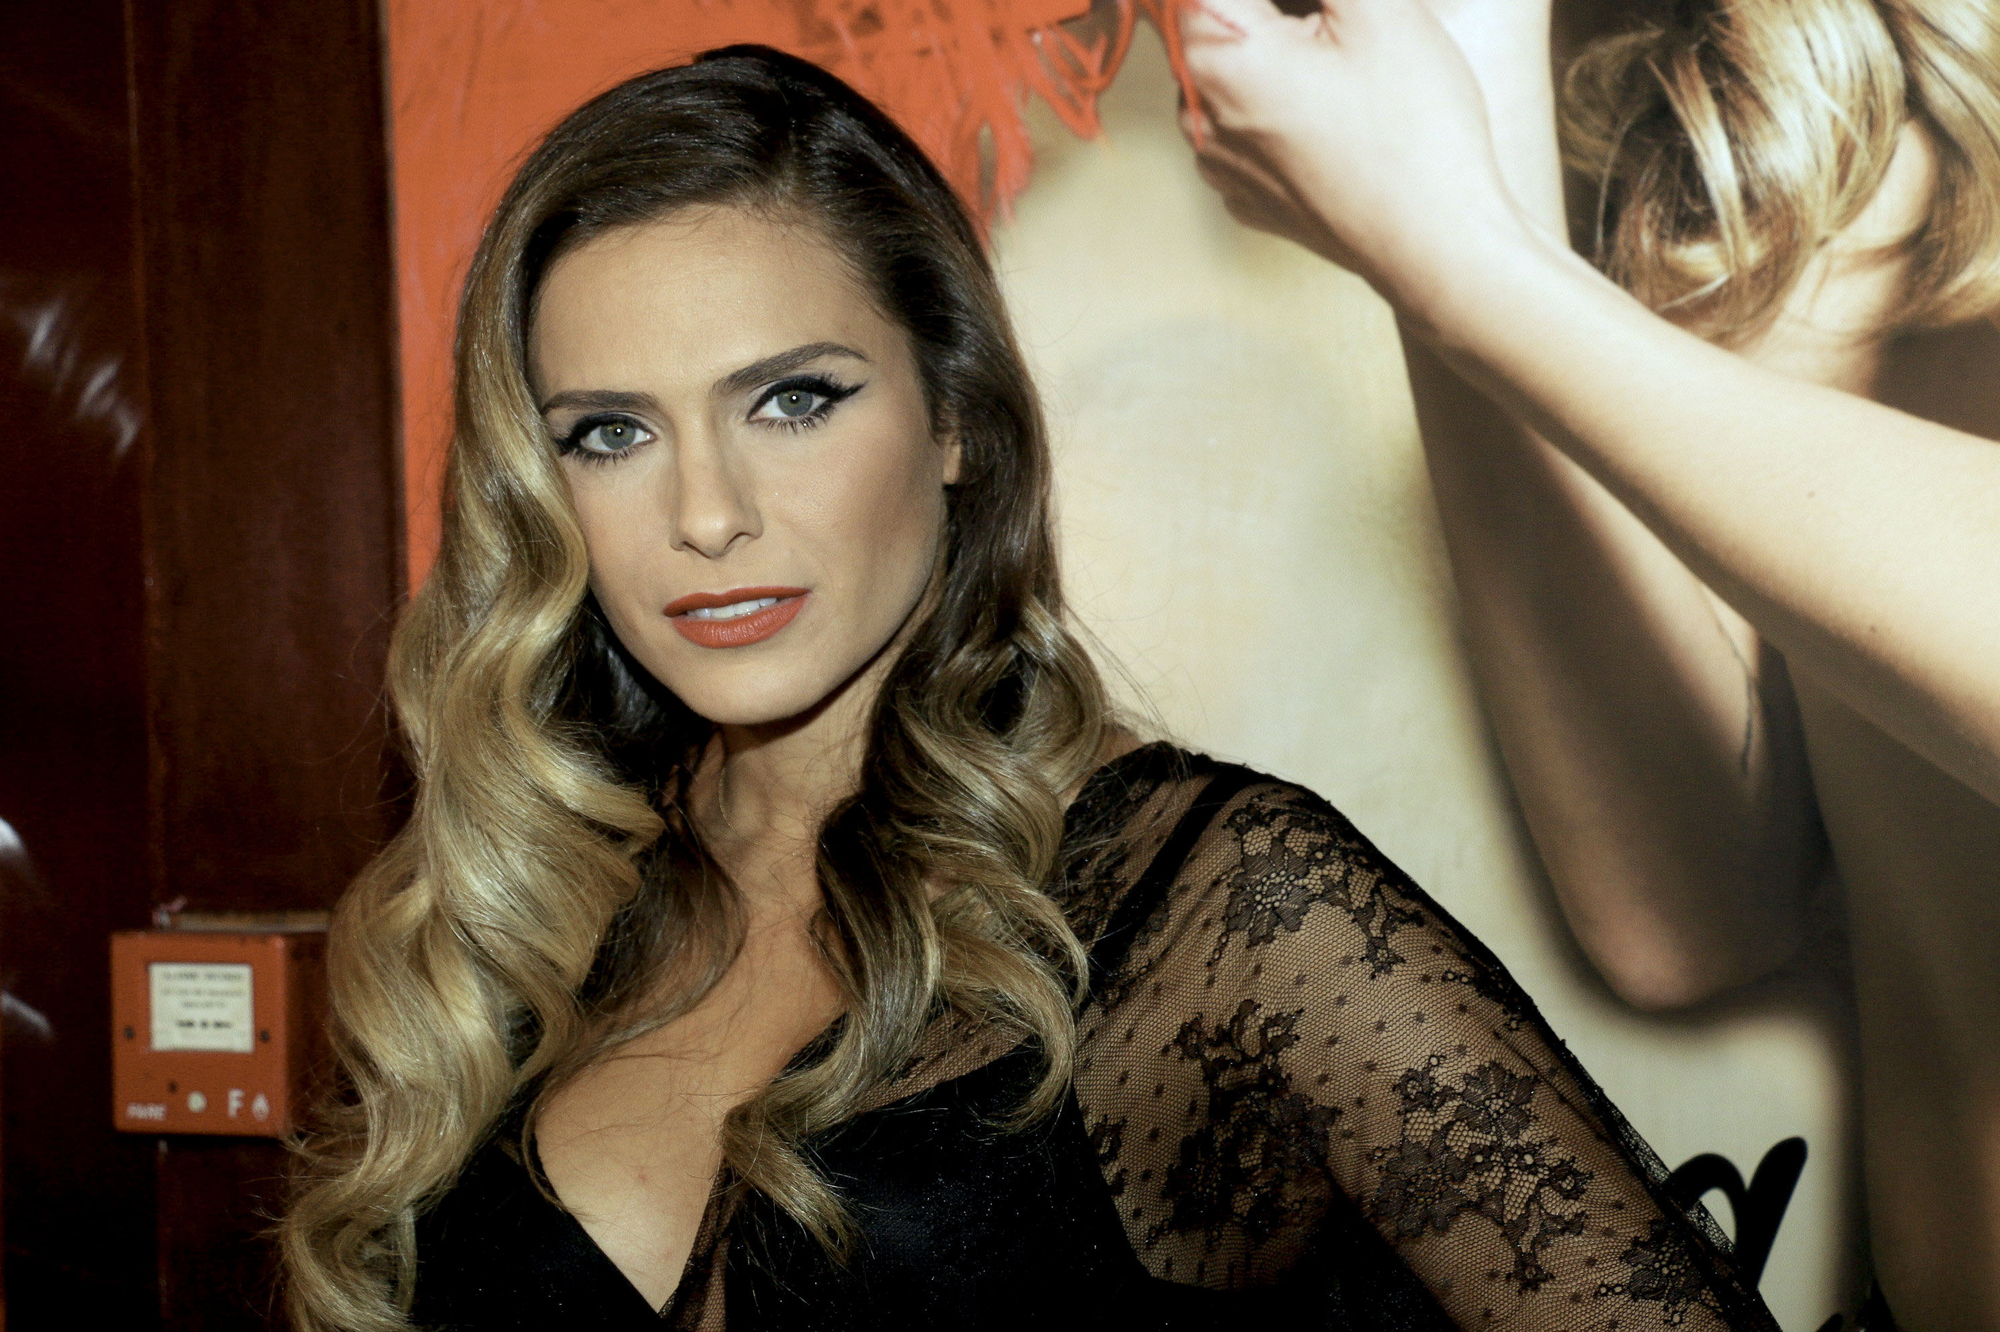 clara morgane 2000 wallpaper - photo #16